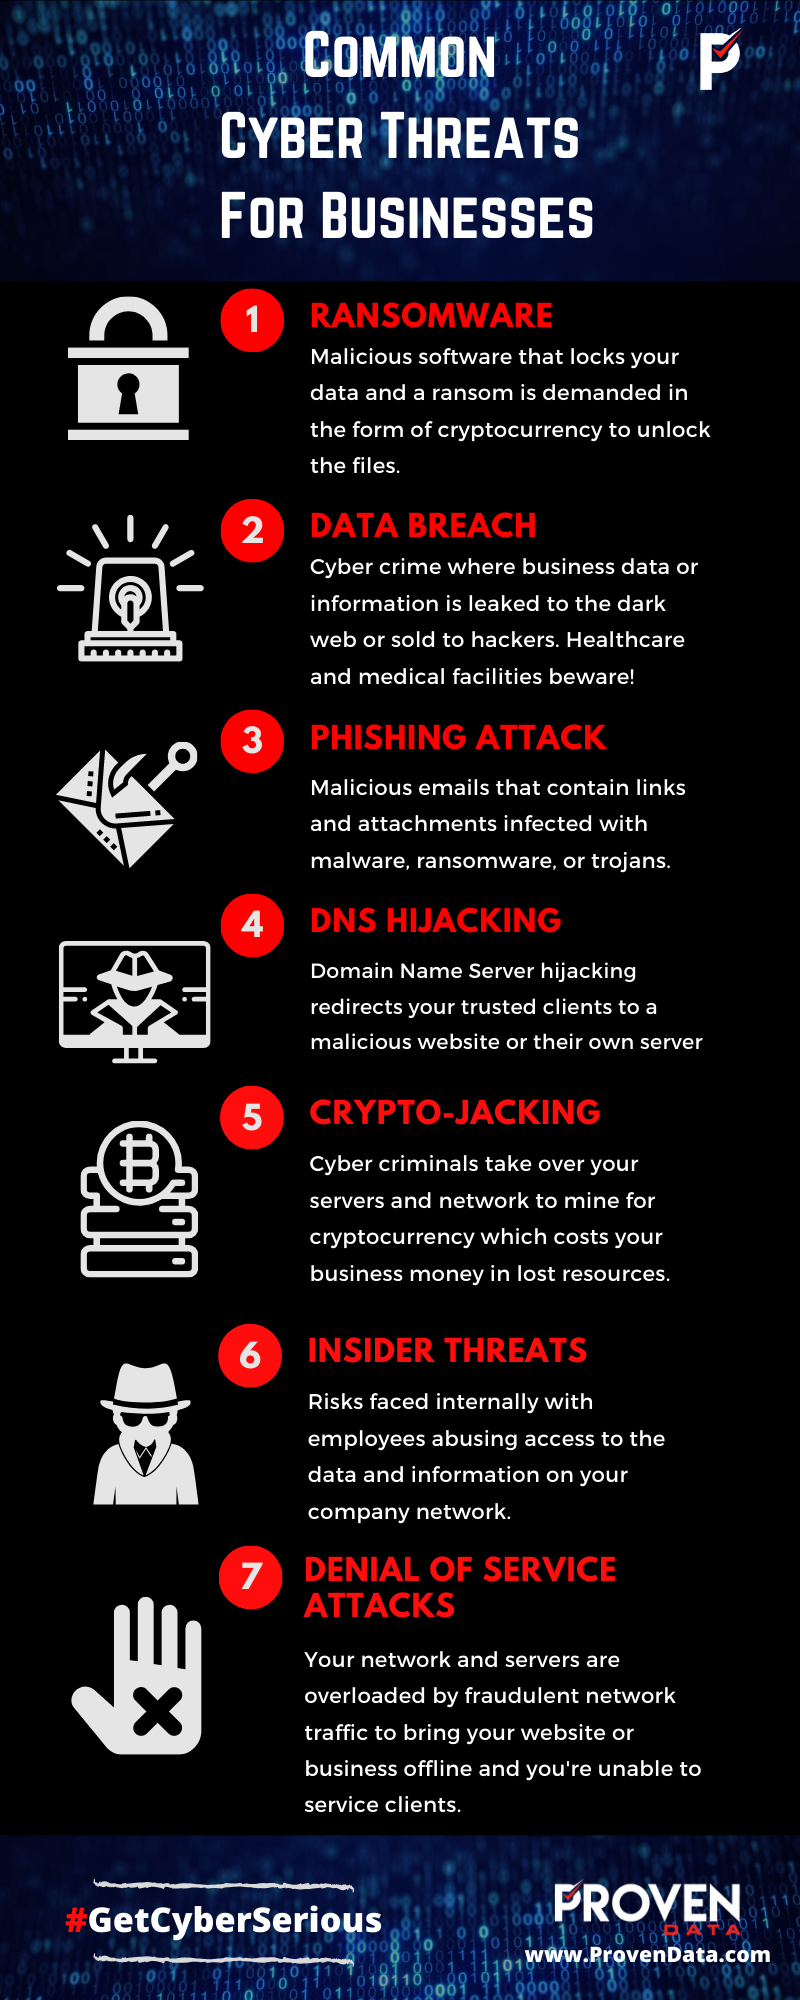 Common Cyber Threats For Businesses In 2020